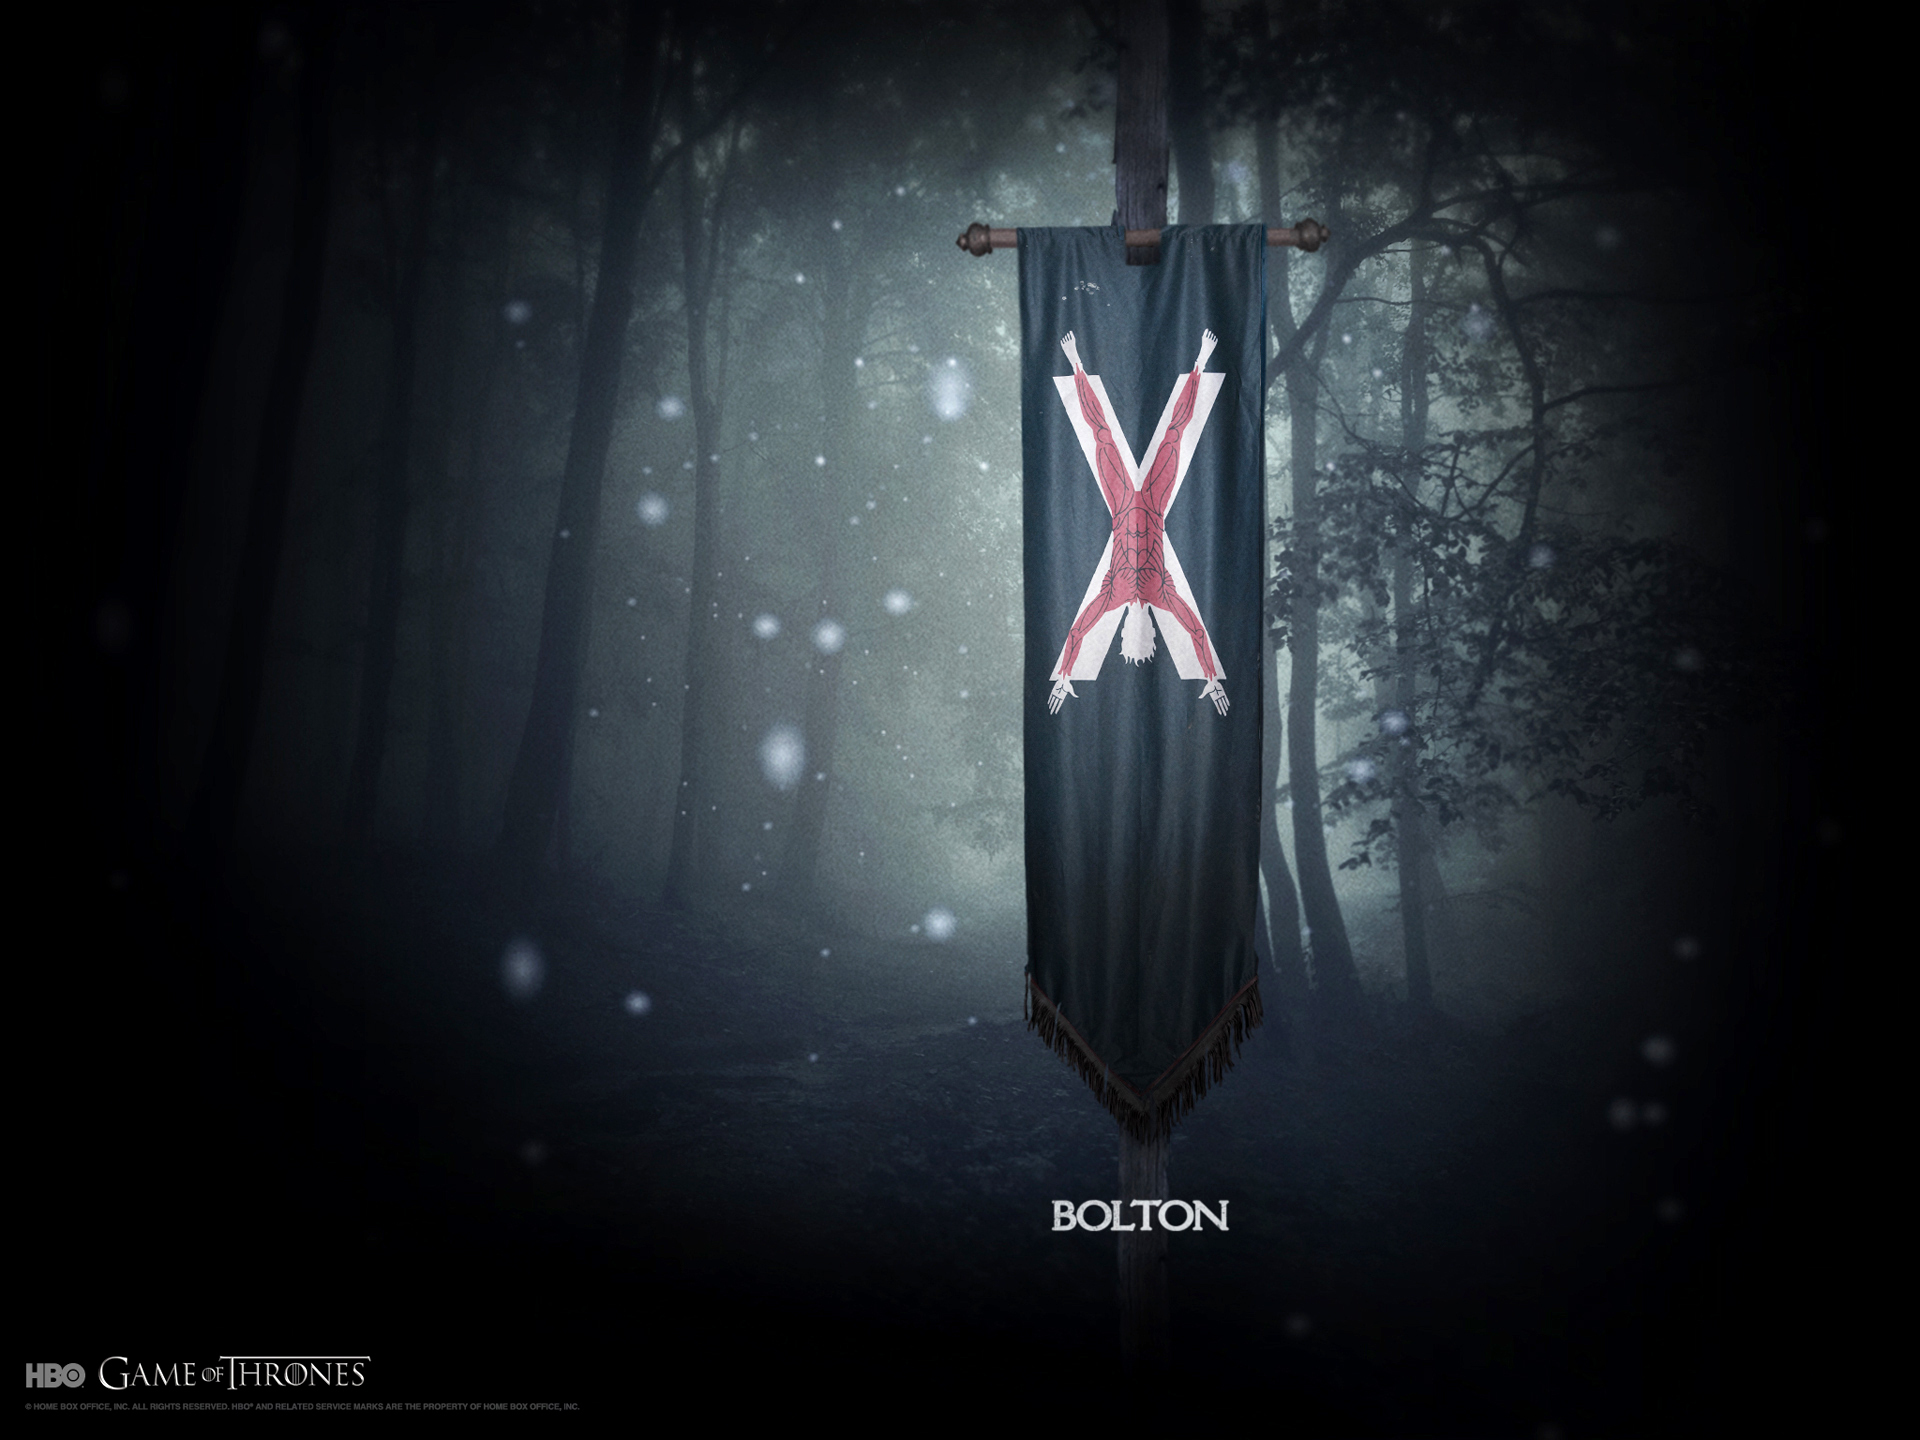 House Bolton - Game of Thrones Wallpaper (21566407) - Fanpop